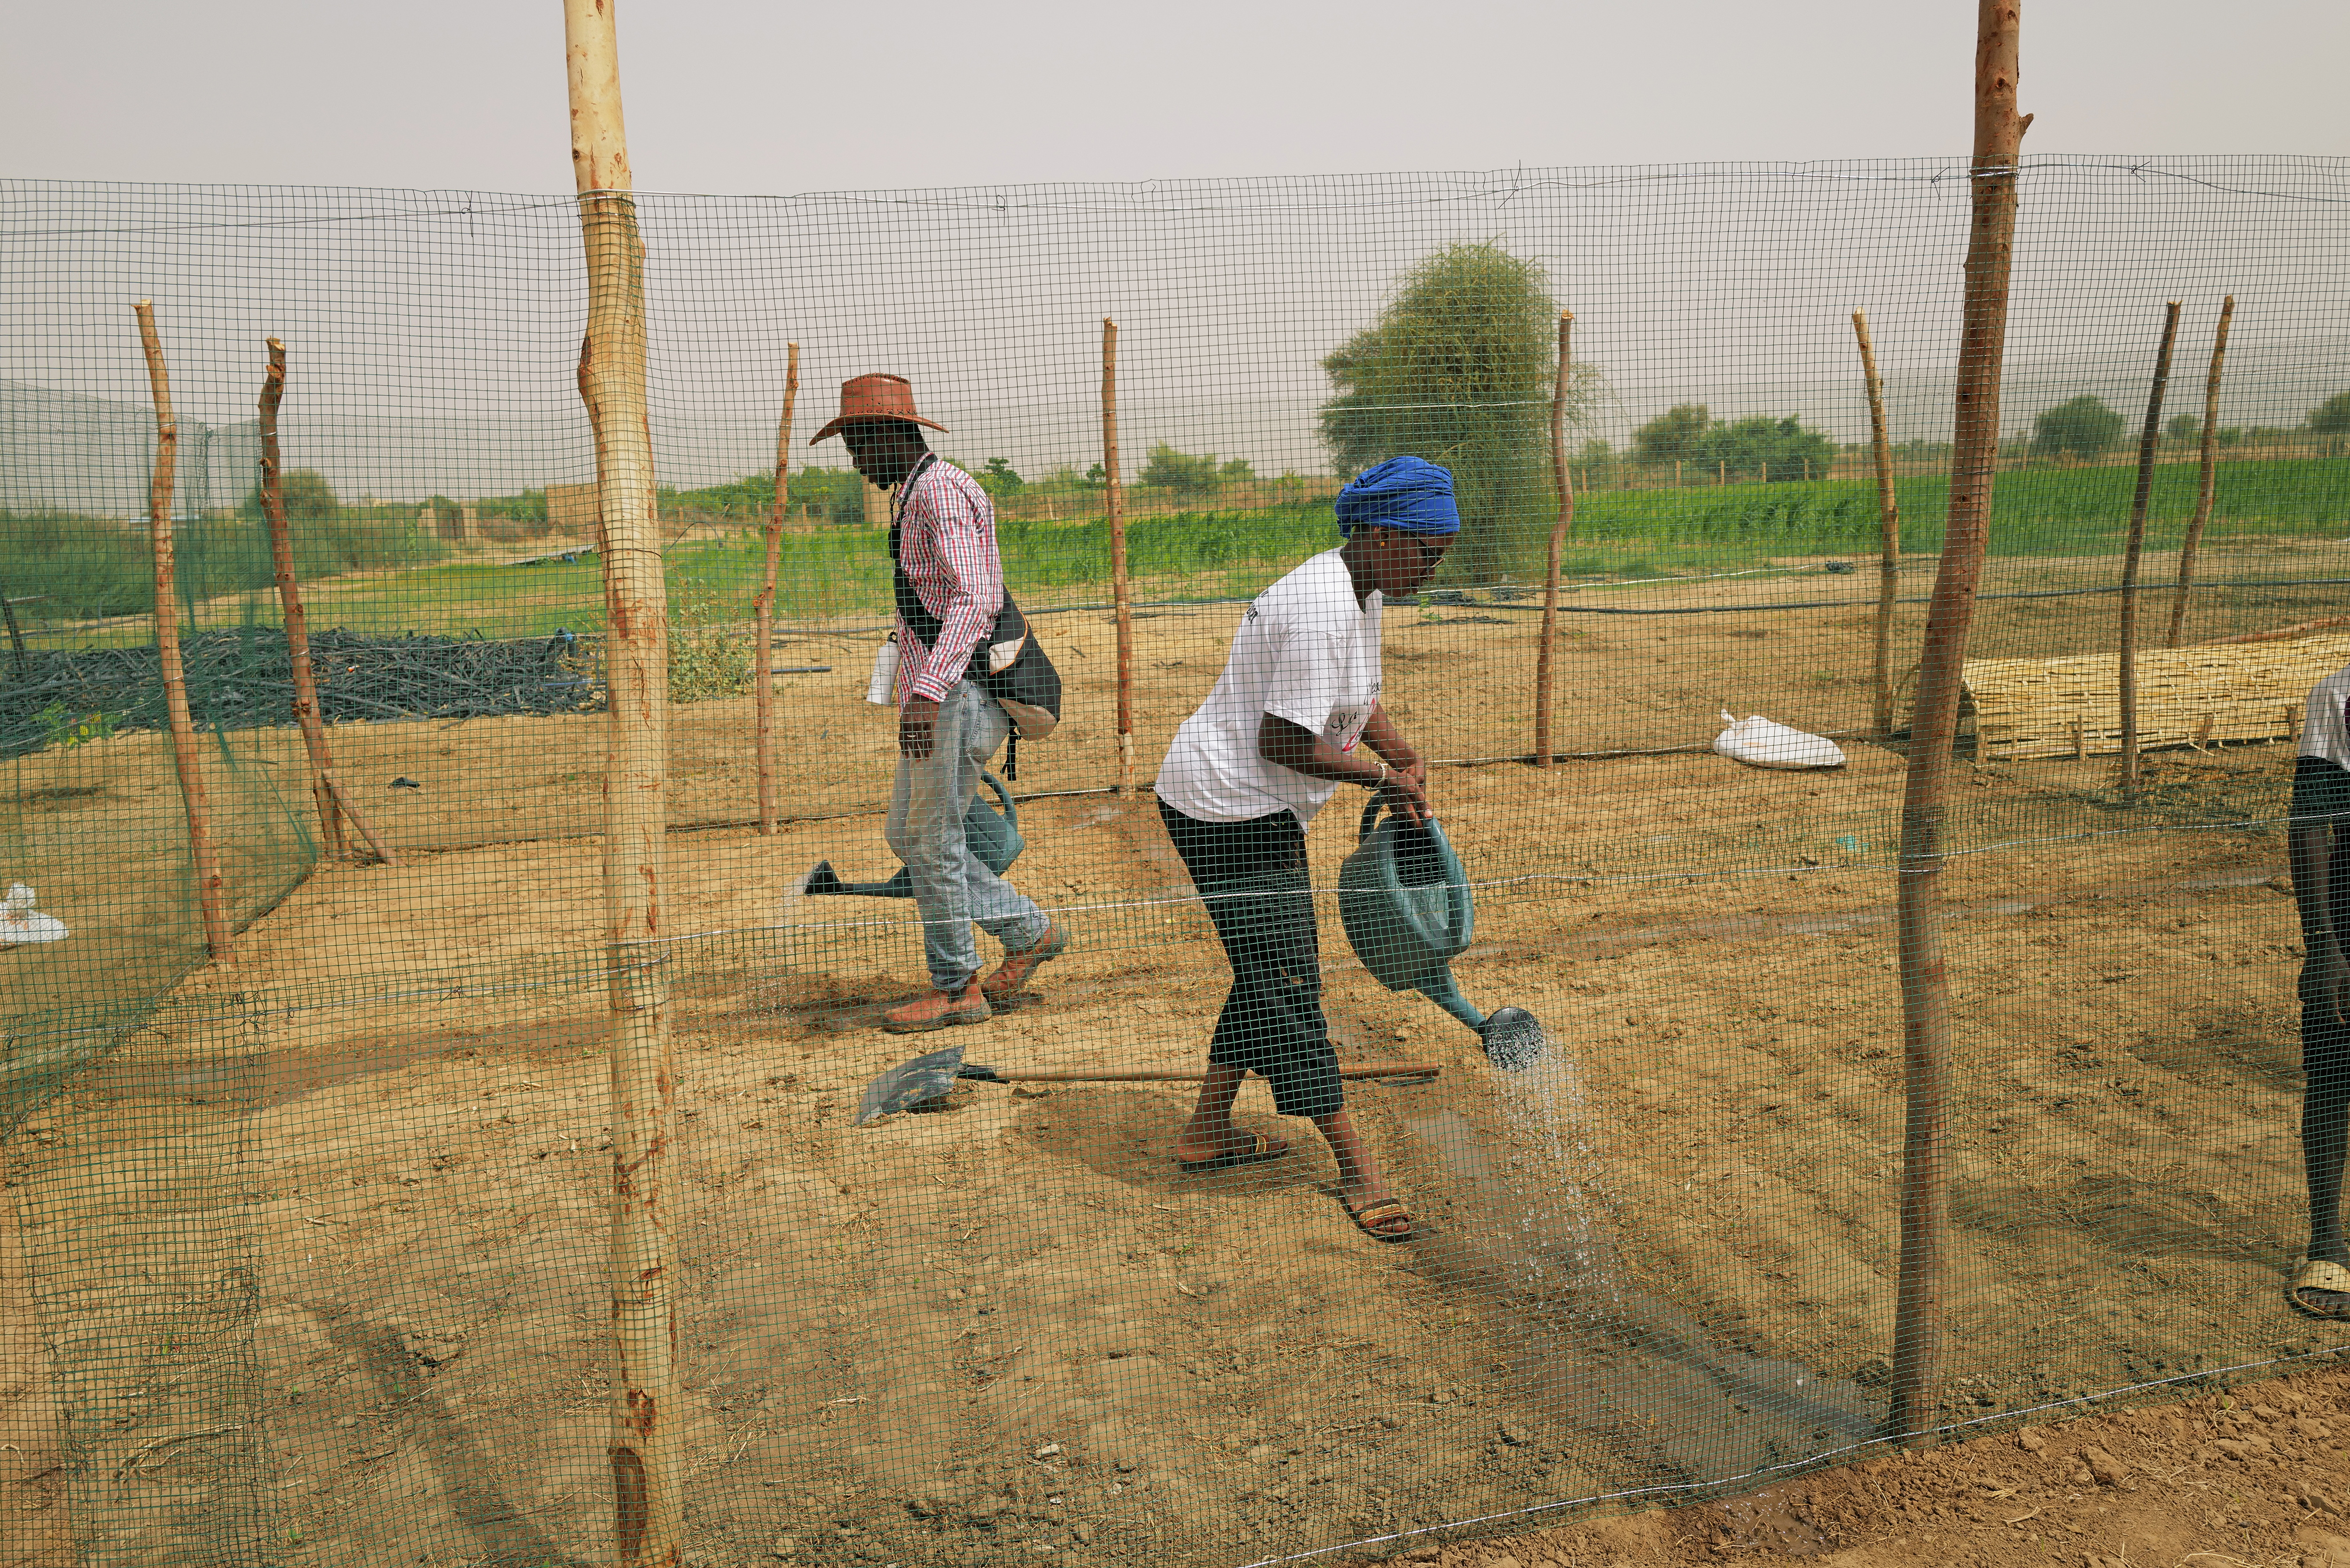 Amadou Bathili, 50, a trainer who teaches how to build Tolou Keur gardens through the Tolou Keur programme, prepares a chicken cage at a newly built Tolou Keur garden in Boki Diawe department of Podor region, in an area which is part of the Great Green Wall of the Sahara and the Sahel area, in Senegal, July 10, 2021. Gardens known as 'Tolou Keur' hold plants and trees resistant to hot, dry climates, and are planted with circular beds that allow roots to grow inwards, trapping liquids and bacteria and improving water retention and composting. REUTERS/Zohra Bensemra